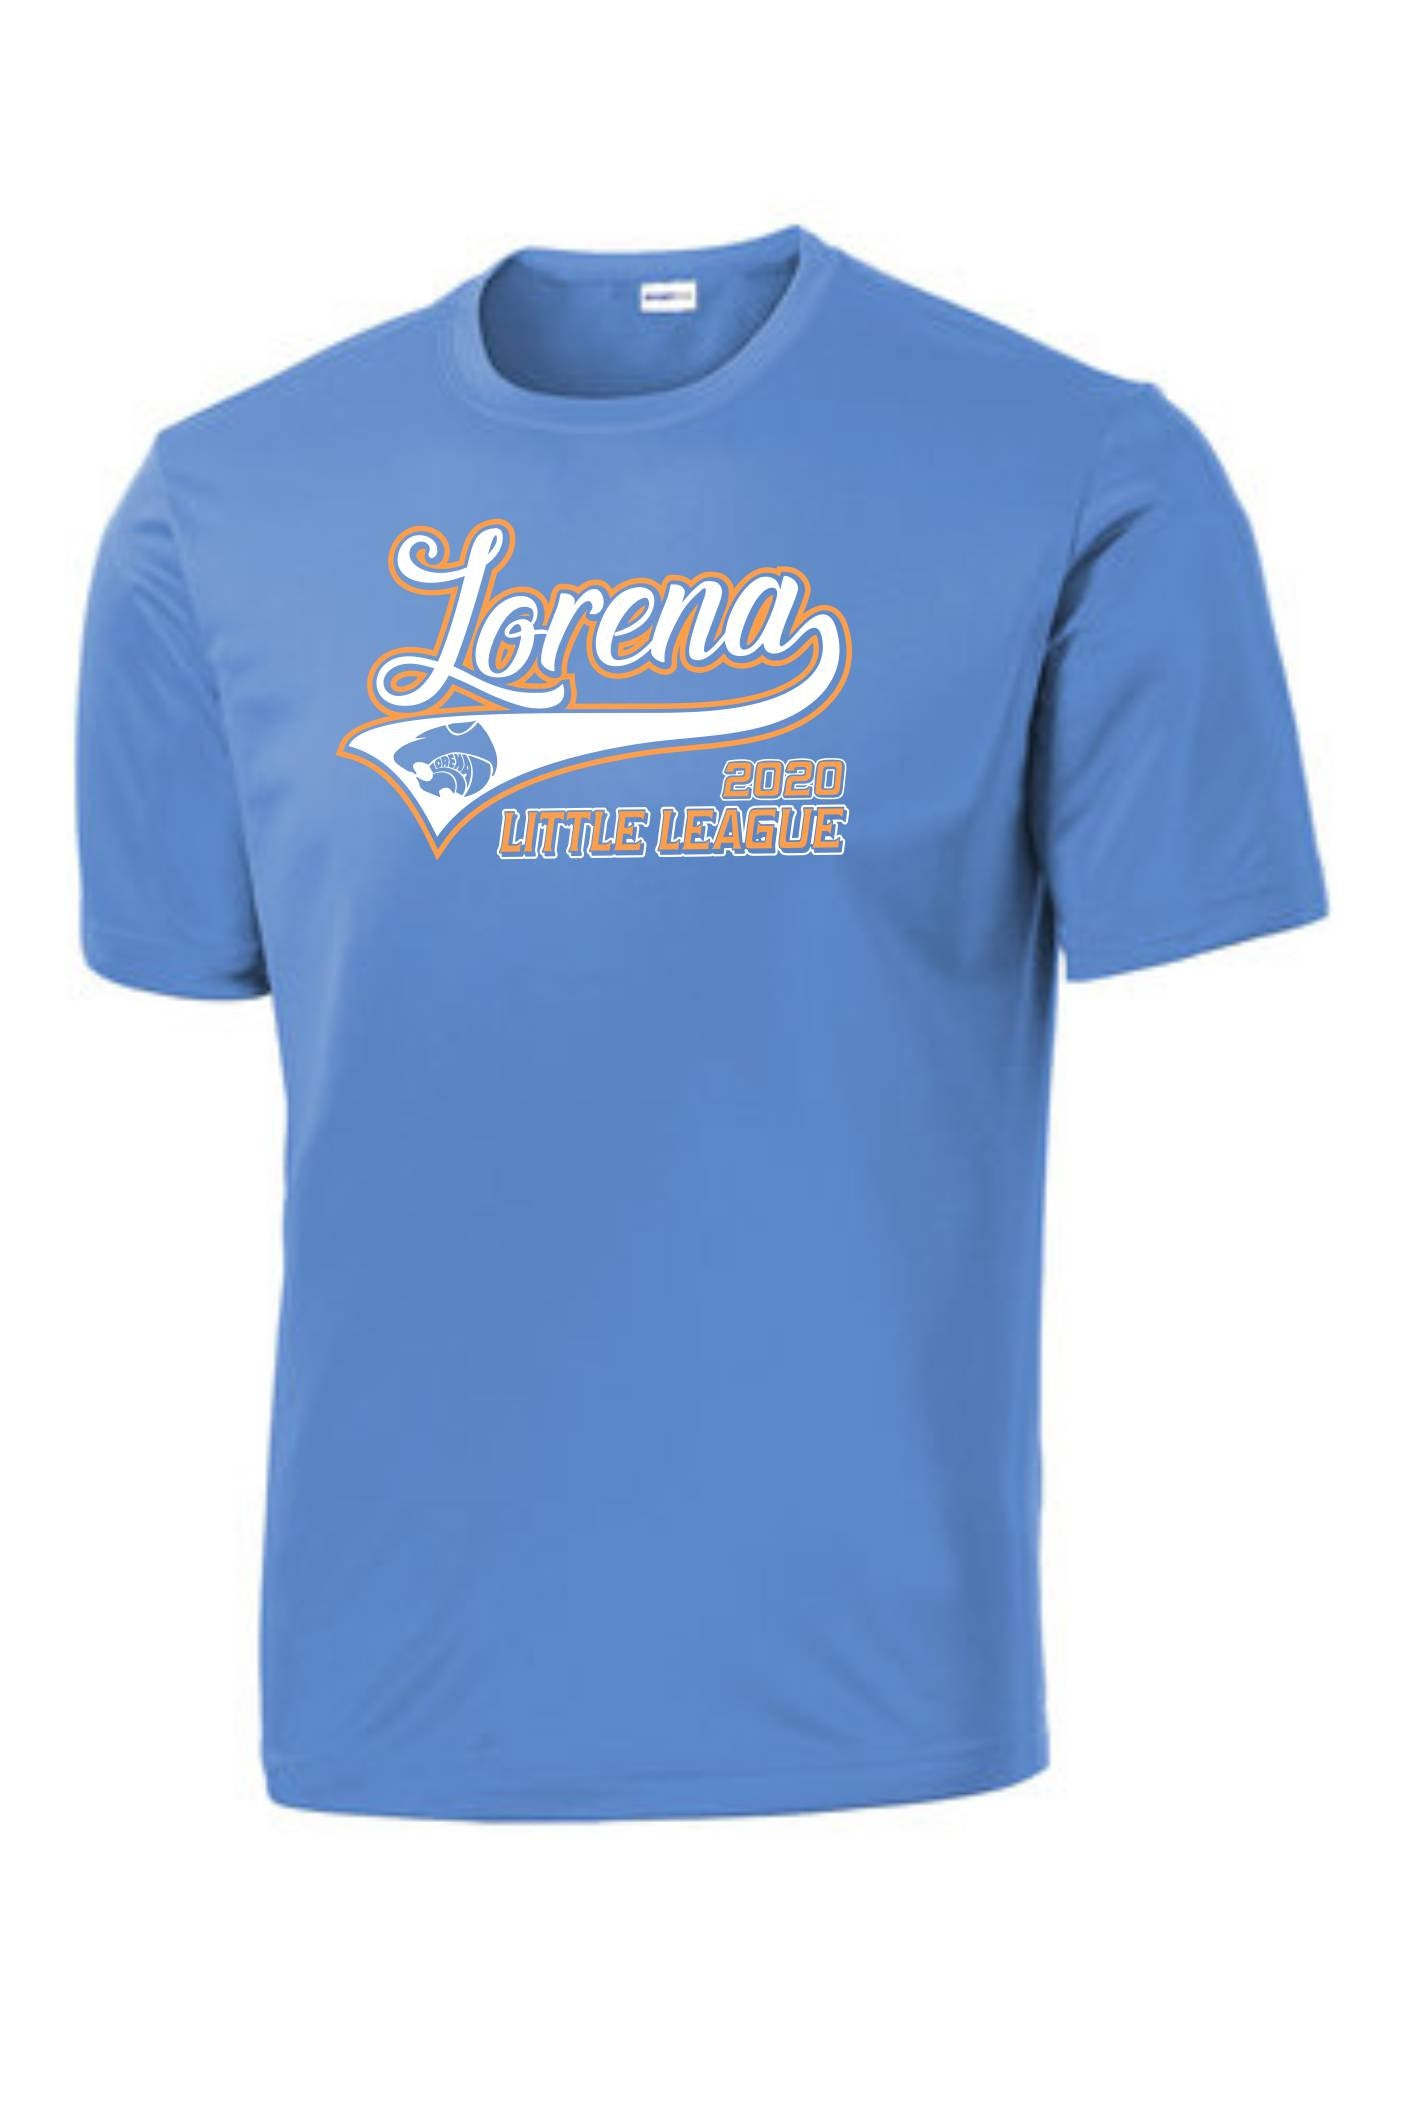 Lorena Parent Shirt- Short Sleeve Dri-Fit